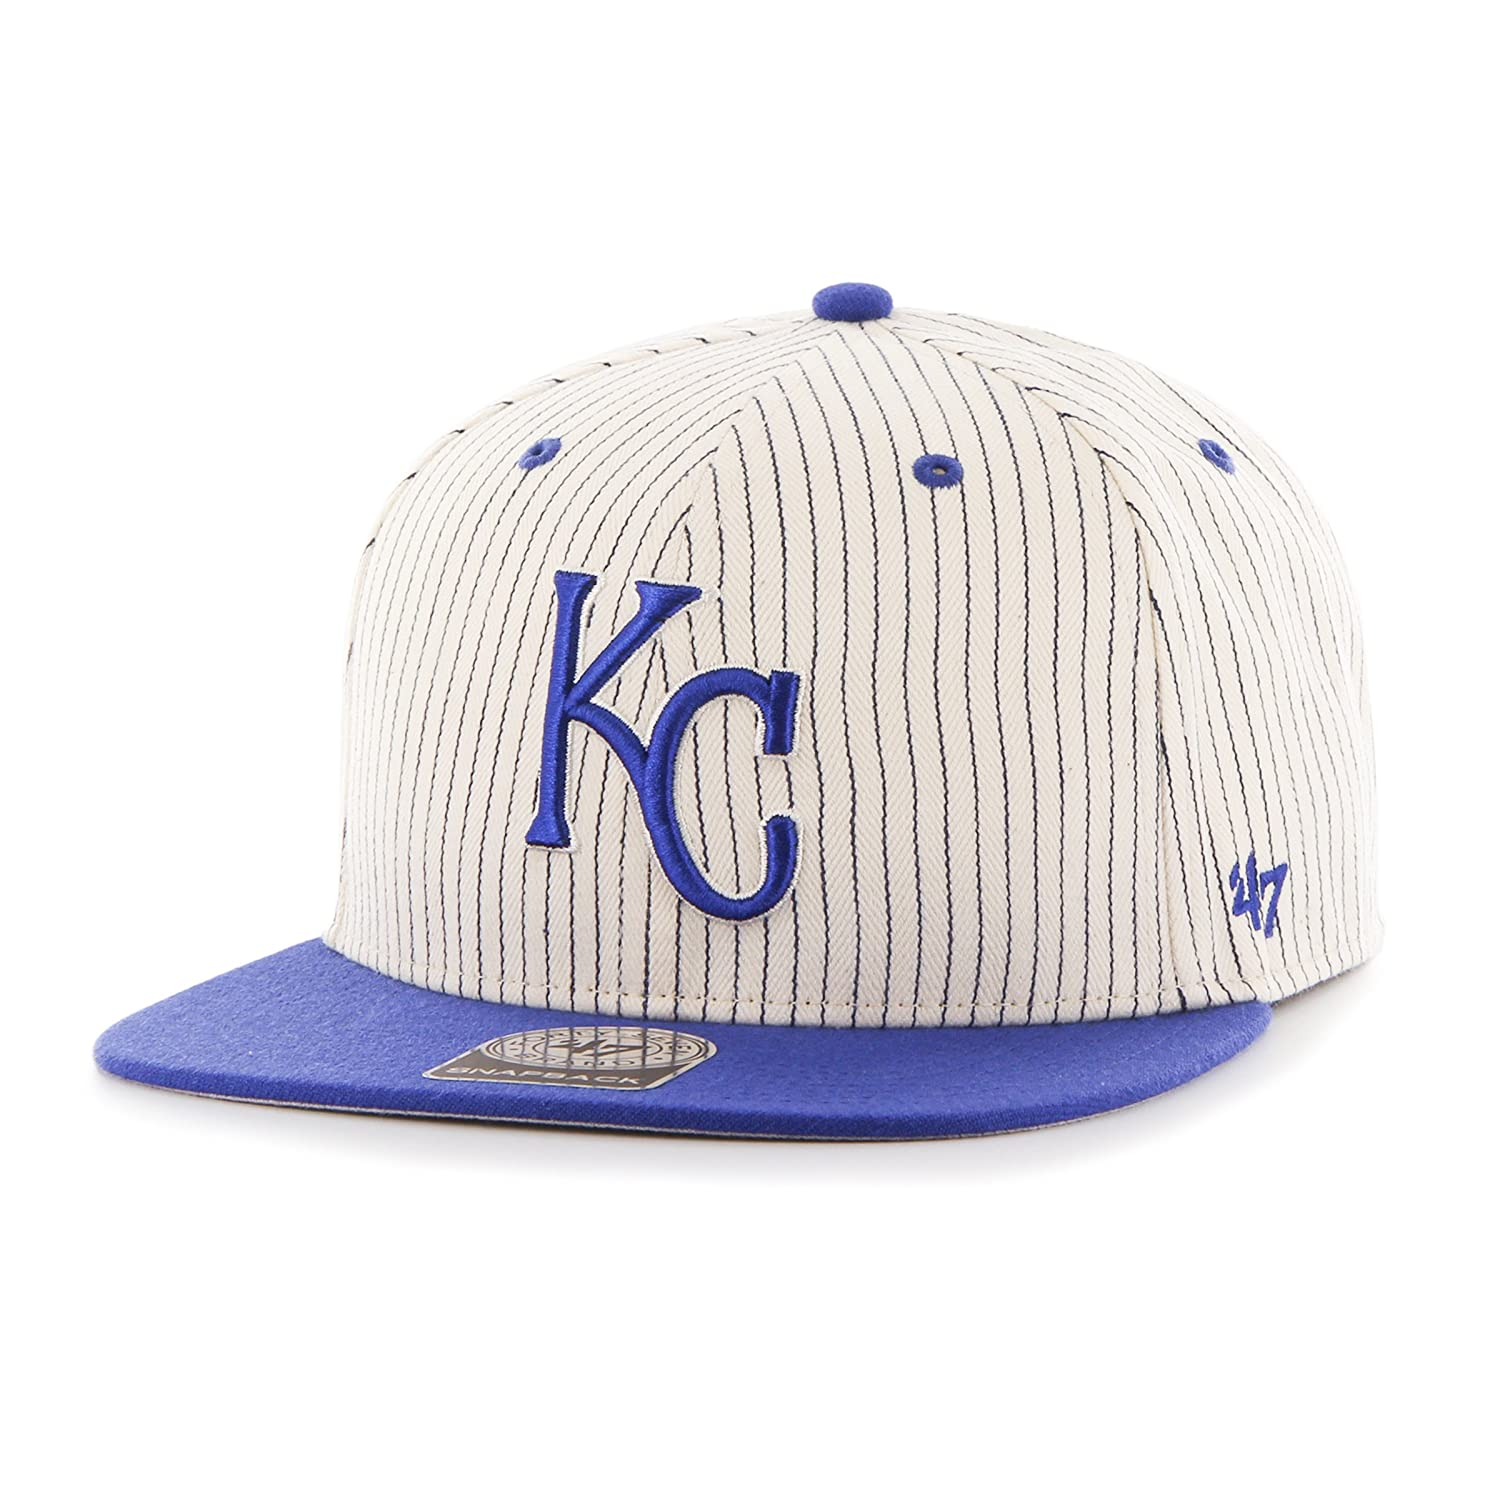 4c05c31a124 Amazon.com    47 MLB Kansas City Royals Woodside Captain Adjustable Snapback  Hat